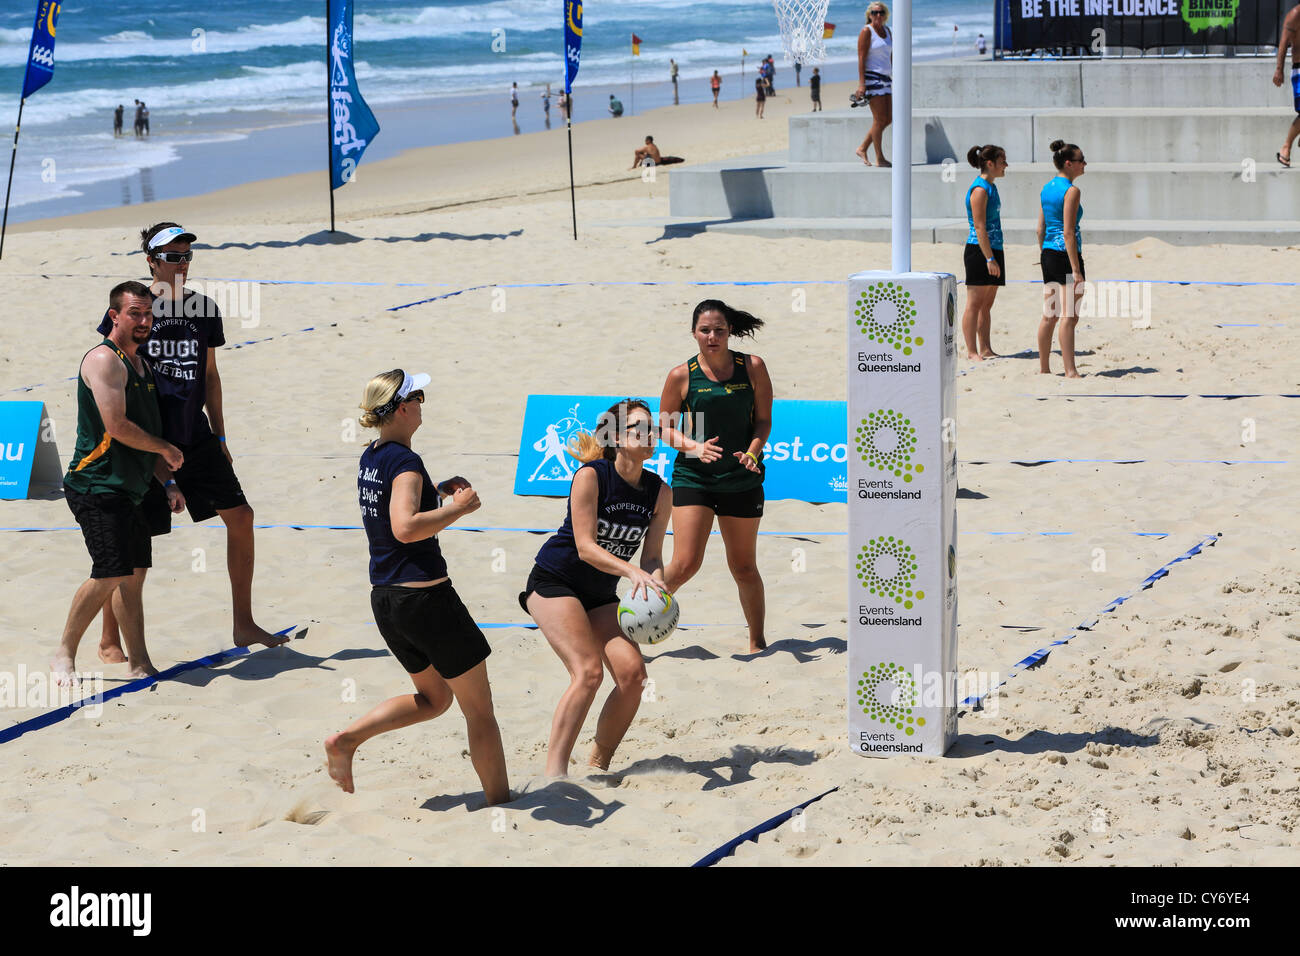 The Game Is On At The Beach Netball At Surfers Paradise Beach For The First Time For This Off Shoot Sport From The Traditional